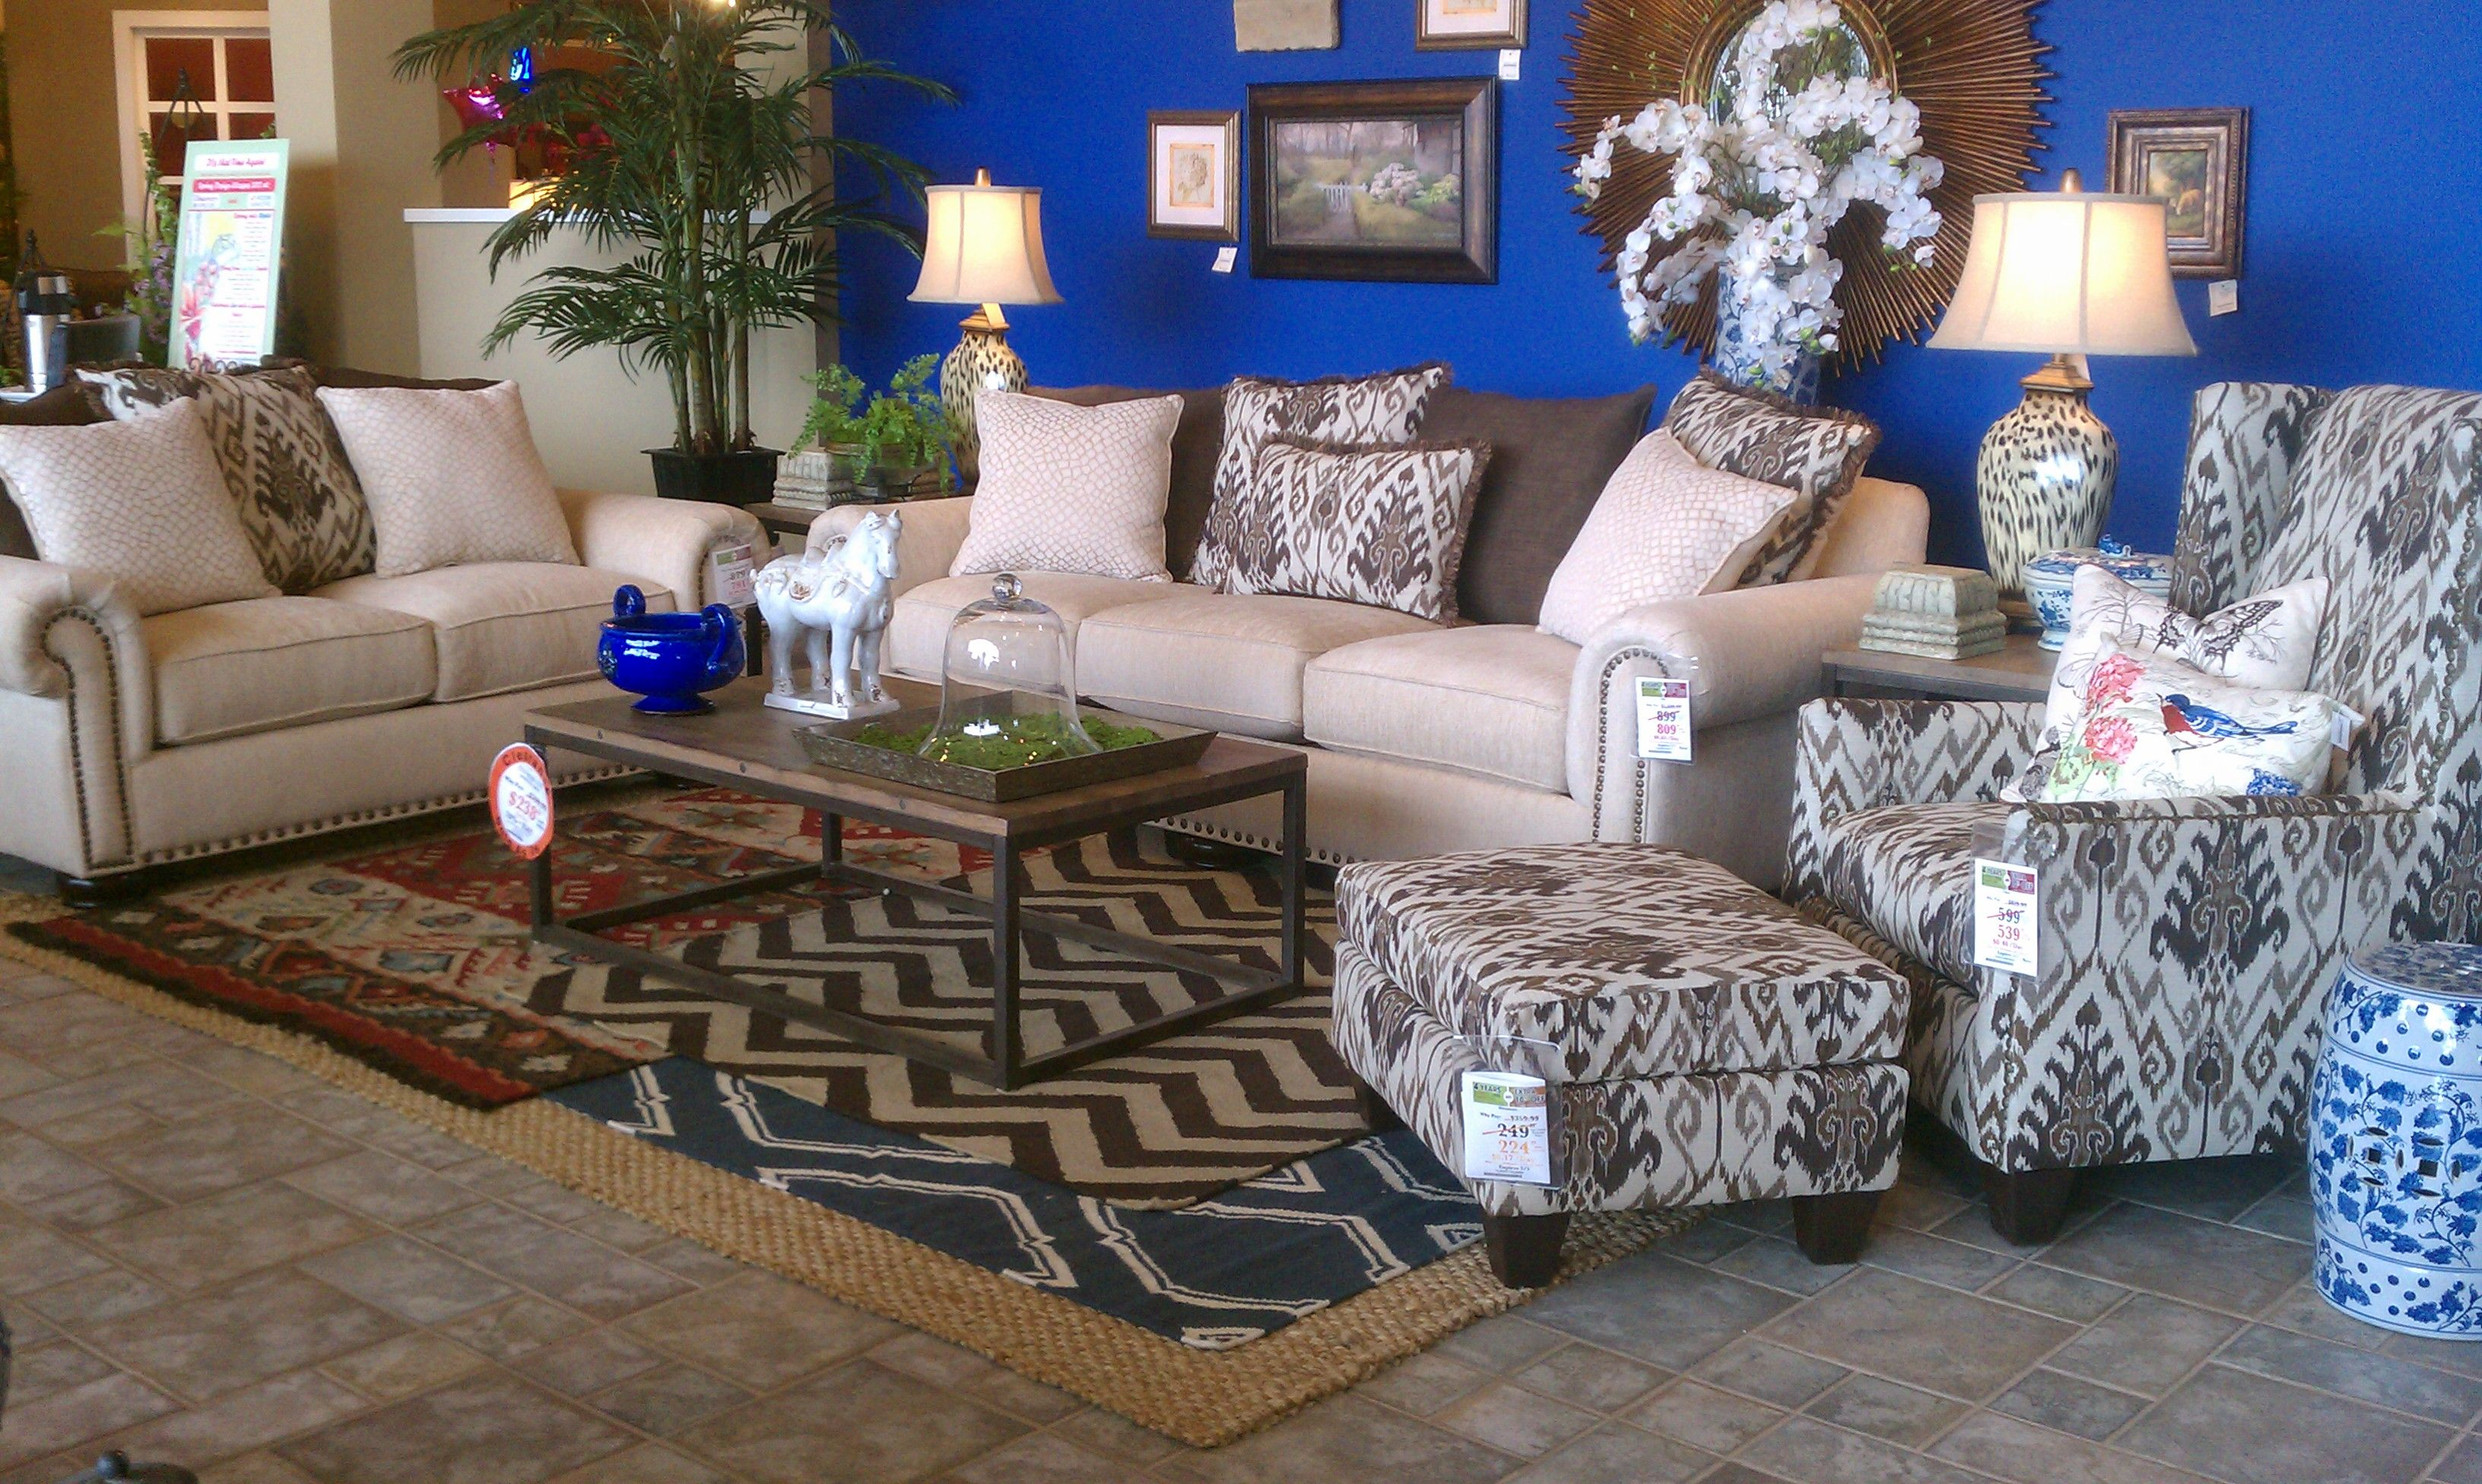 Light Sofa Loveseat And Print Accent Chair Against A Beautiful Blue Wall Three Rugs